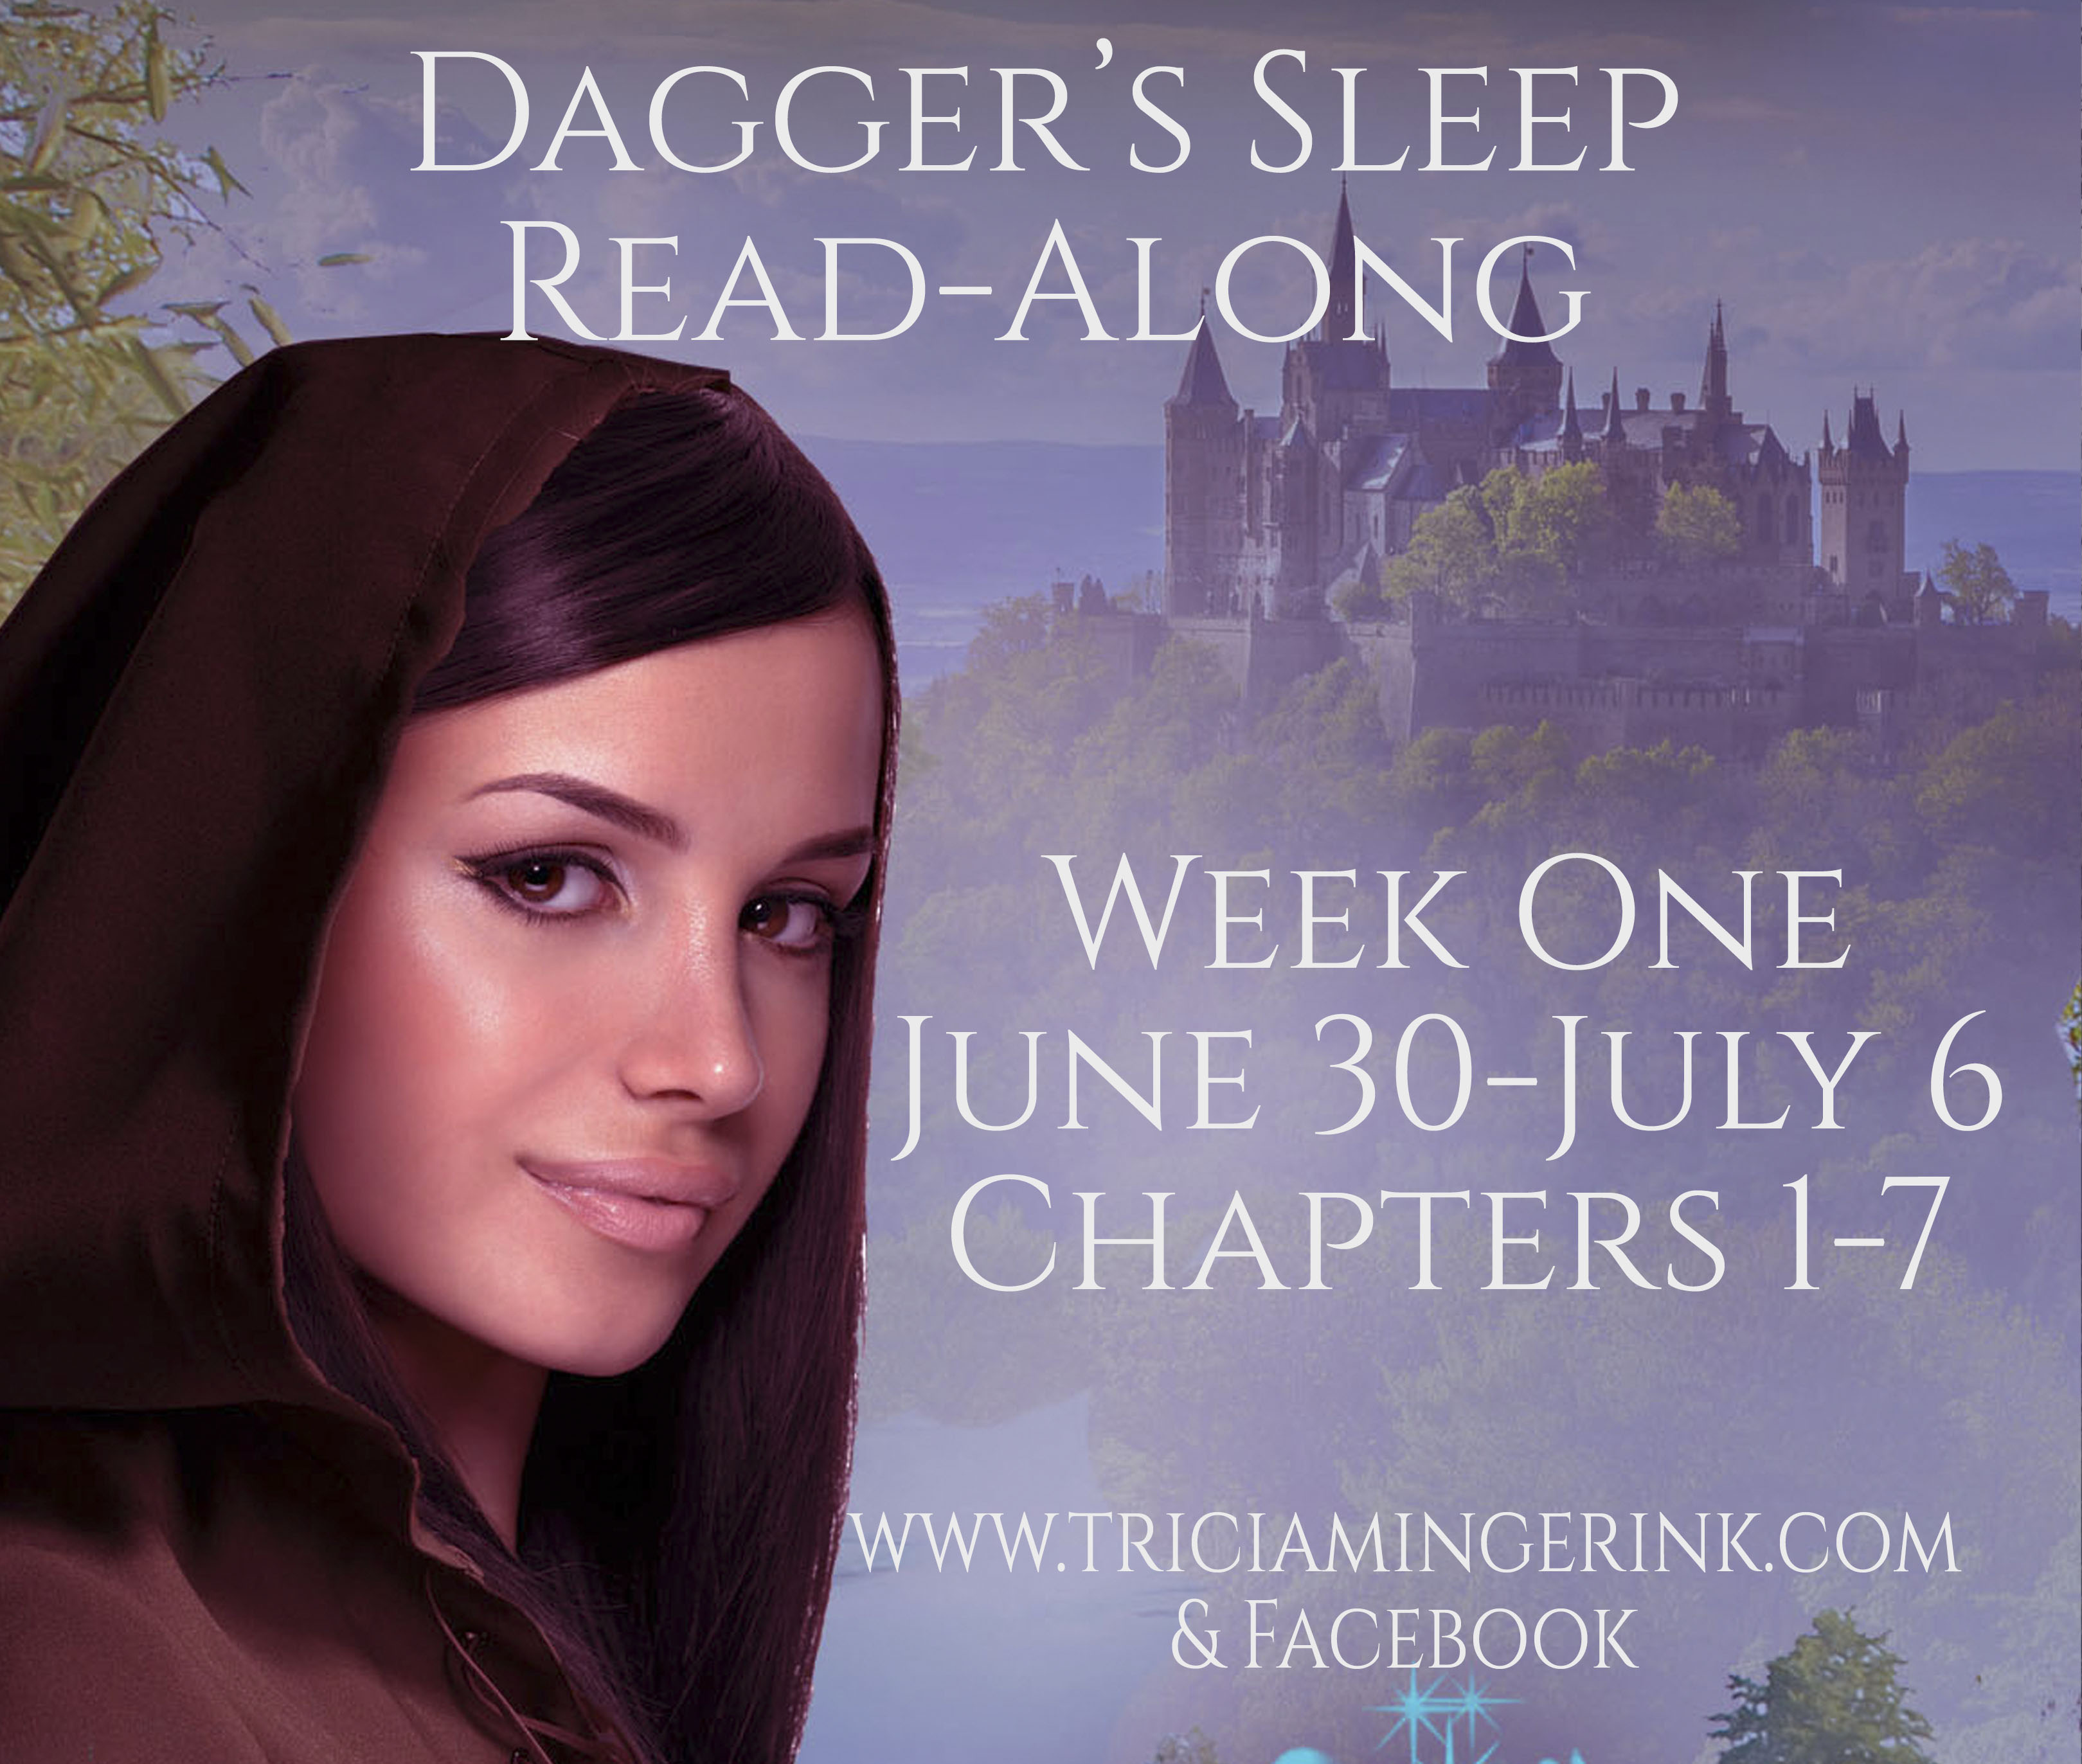 Dagger's Sleep Readalong Week 1.jpg